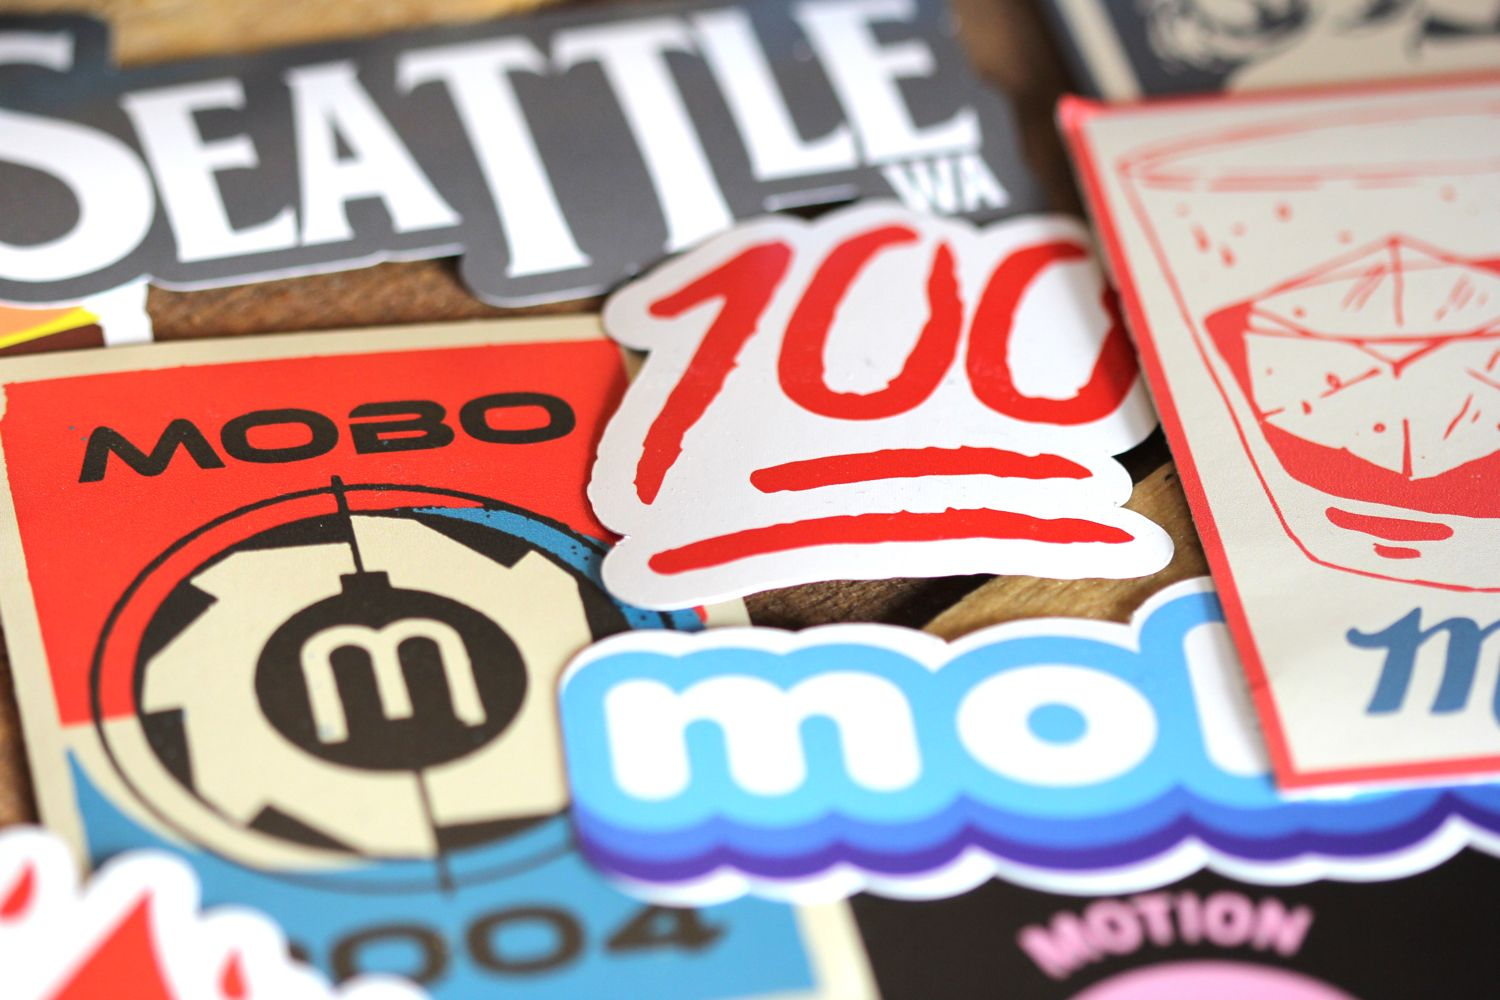 Check Out The Multitude Of Stickers We Print Here Or Have Us - Print your own stickers